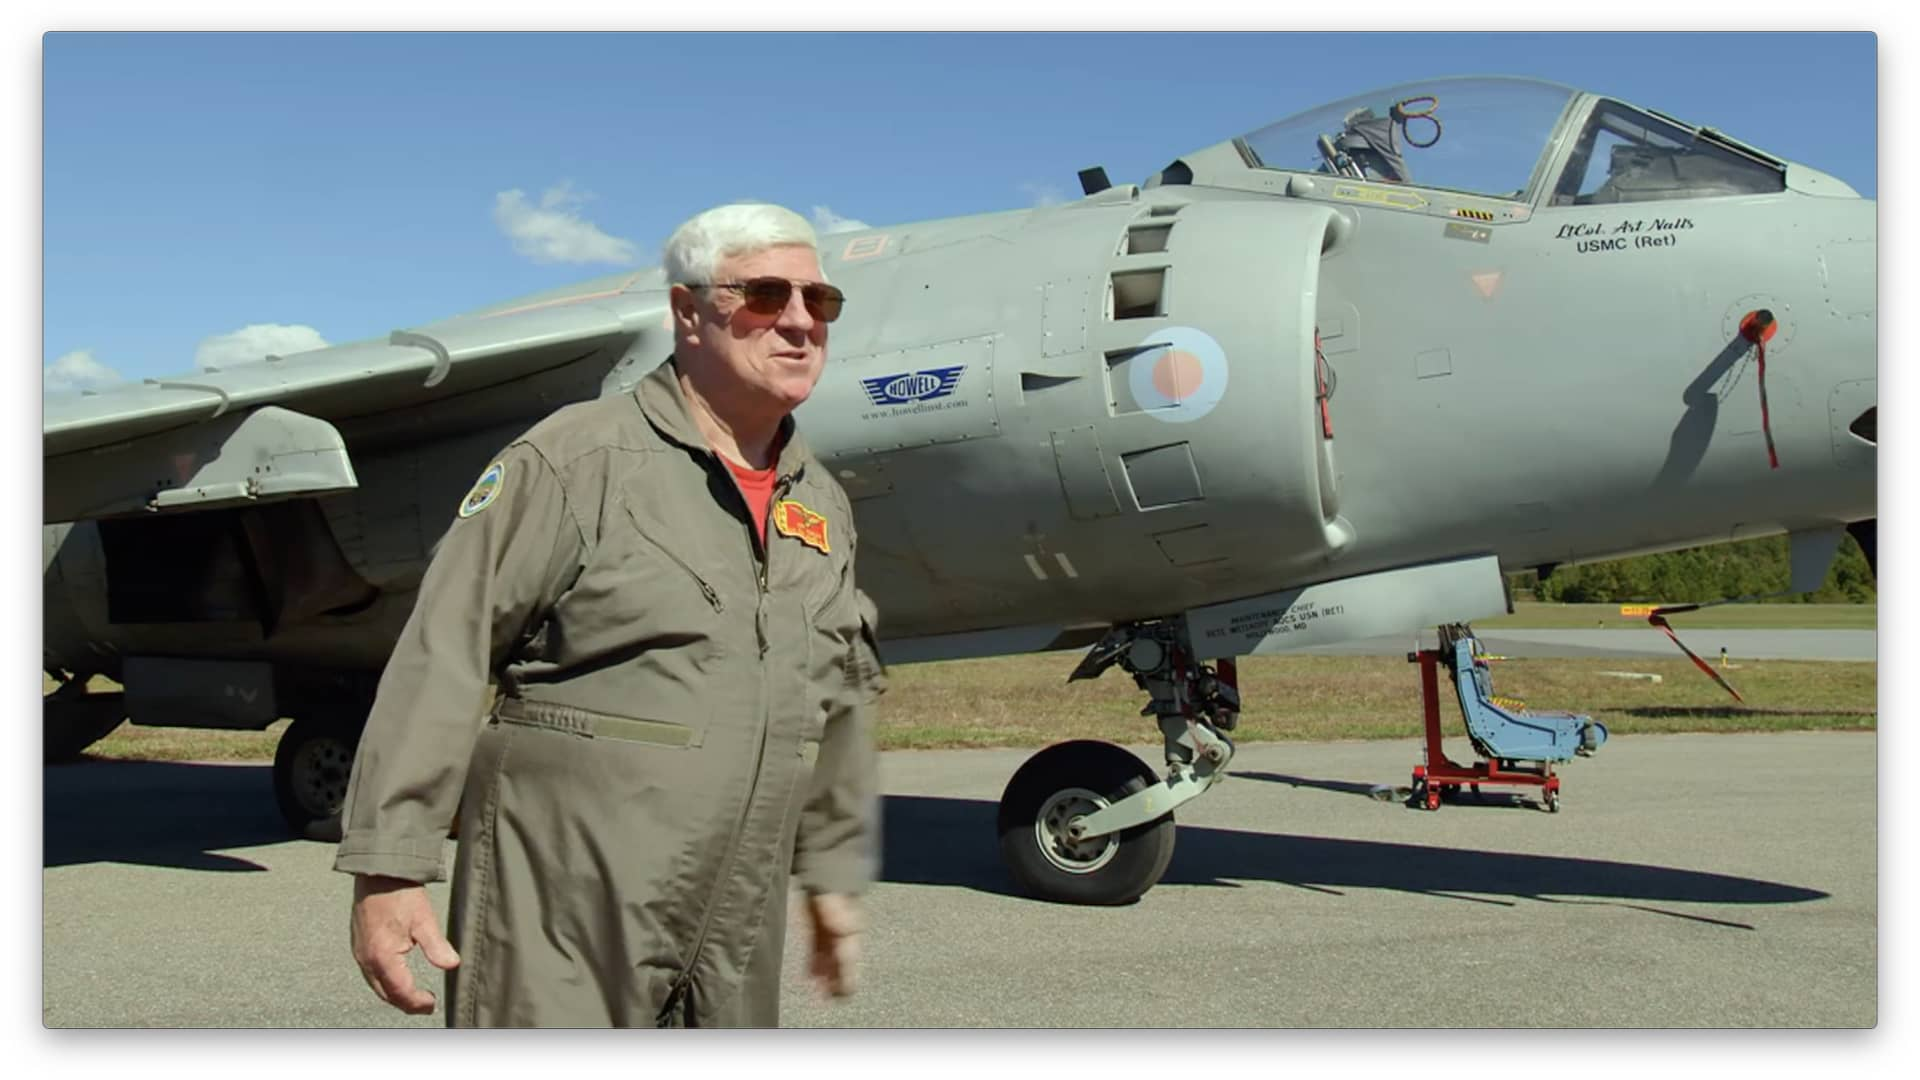 Retired Marine Lt. Col. Art Nalls with his Sea Harrier.